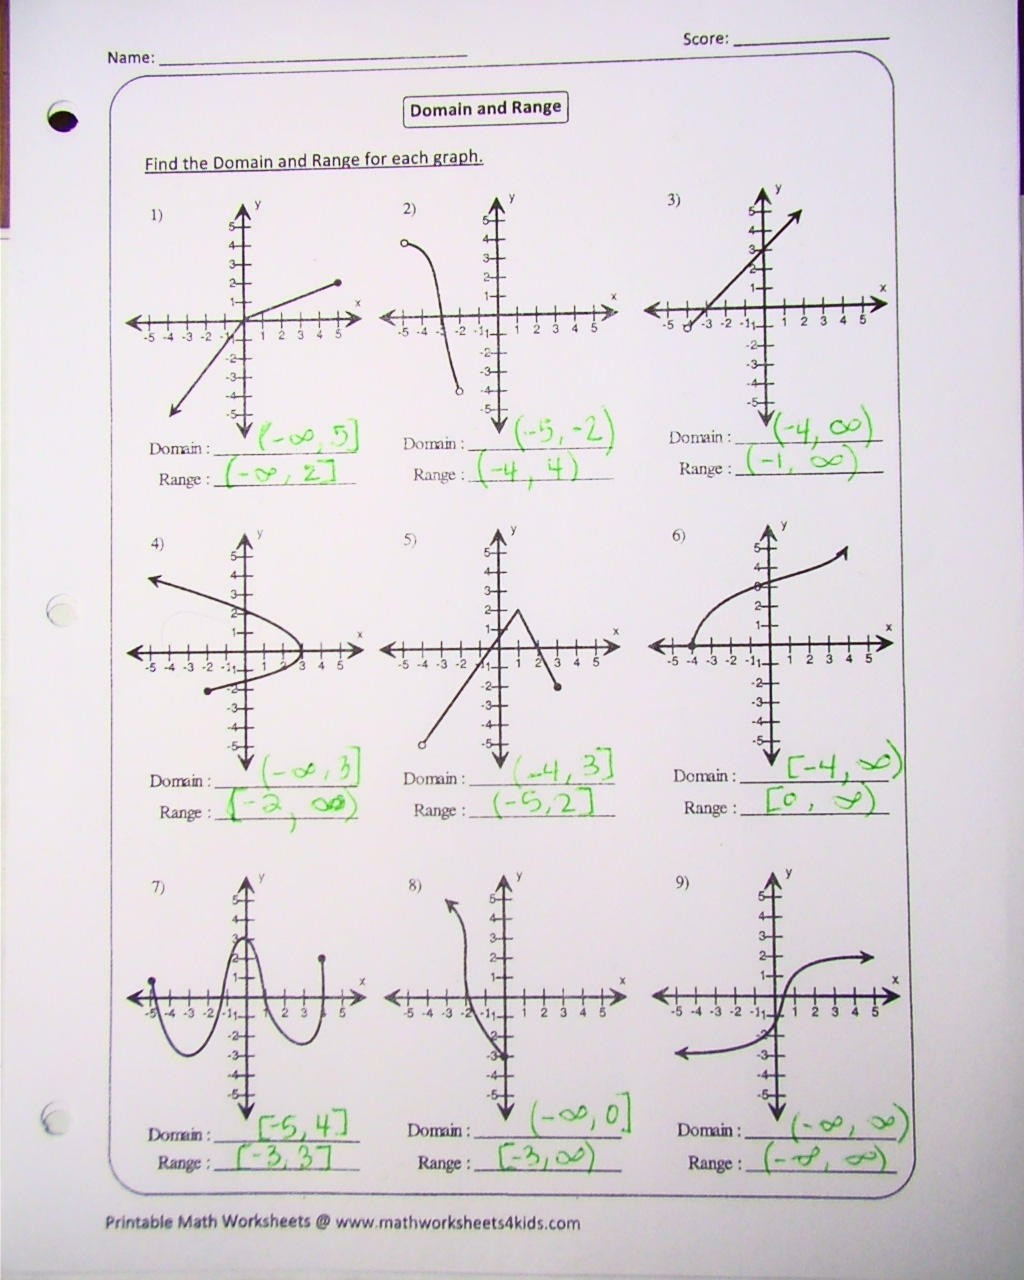 Domain And Range Homework Worksheet Answers